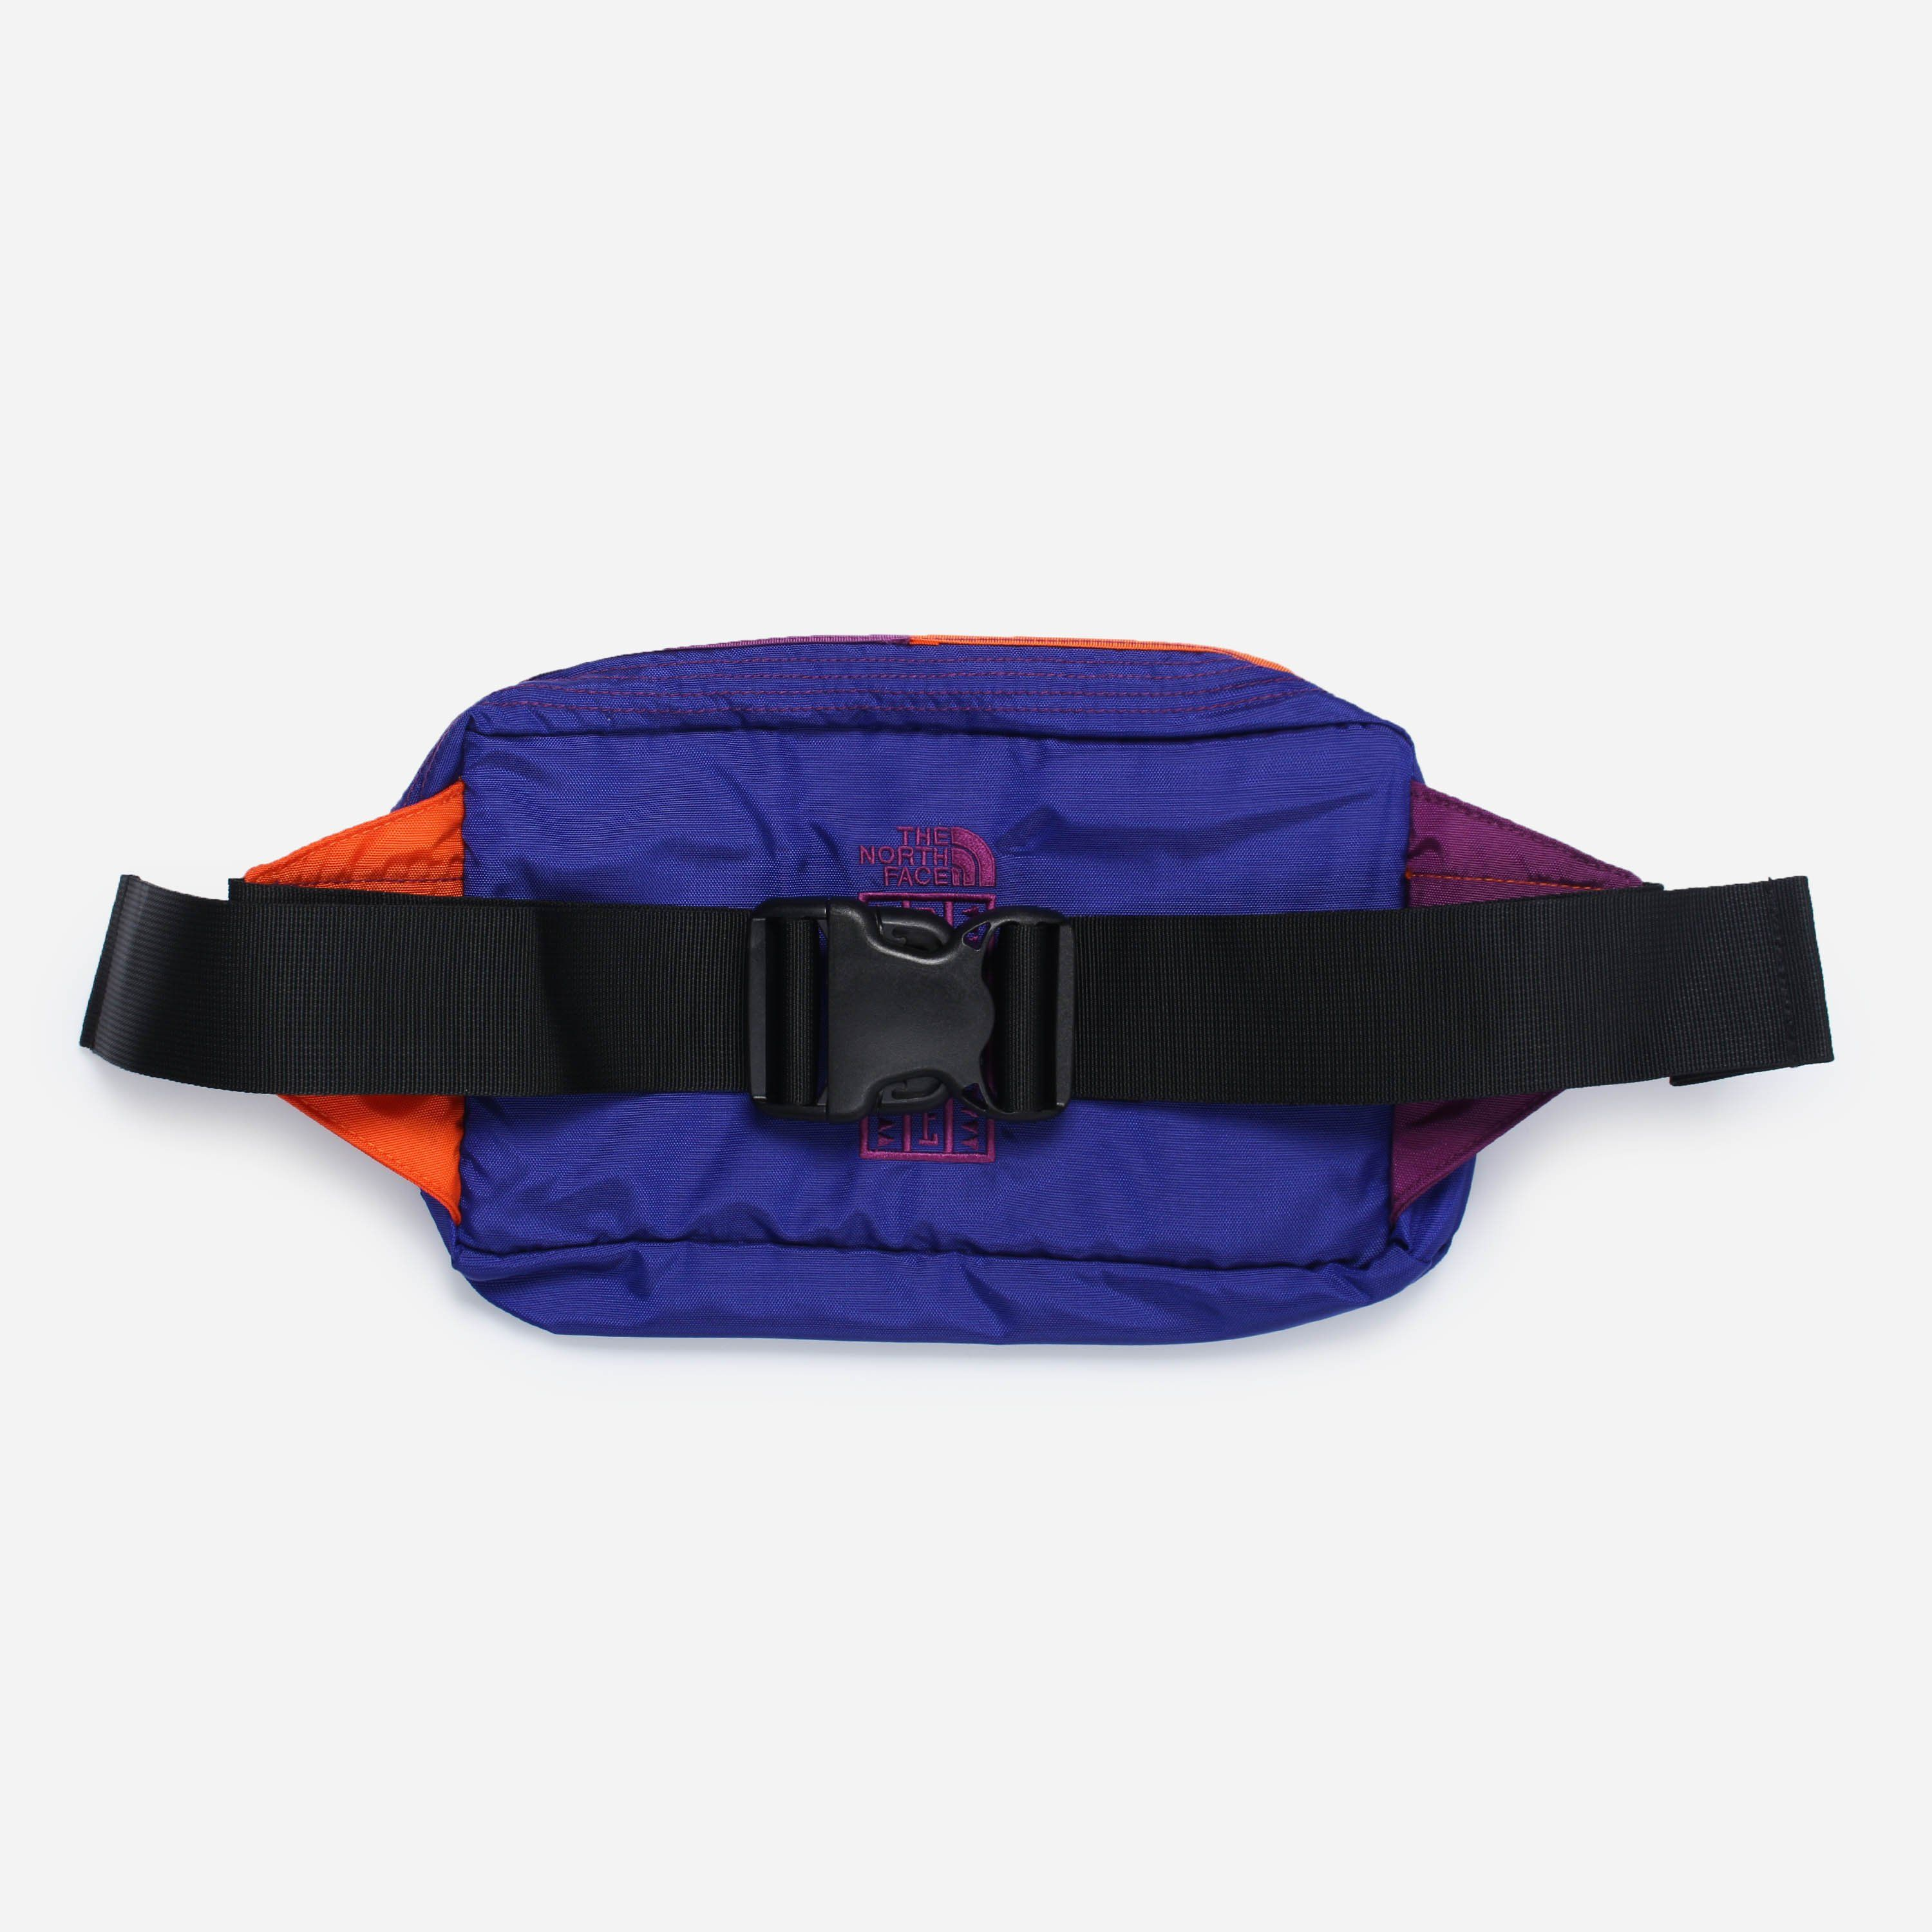 The North Face Rage '92 Bum Bag